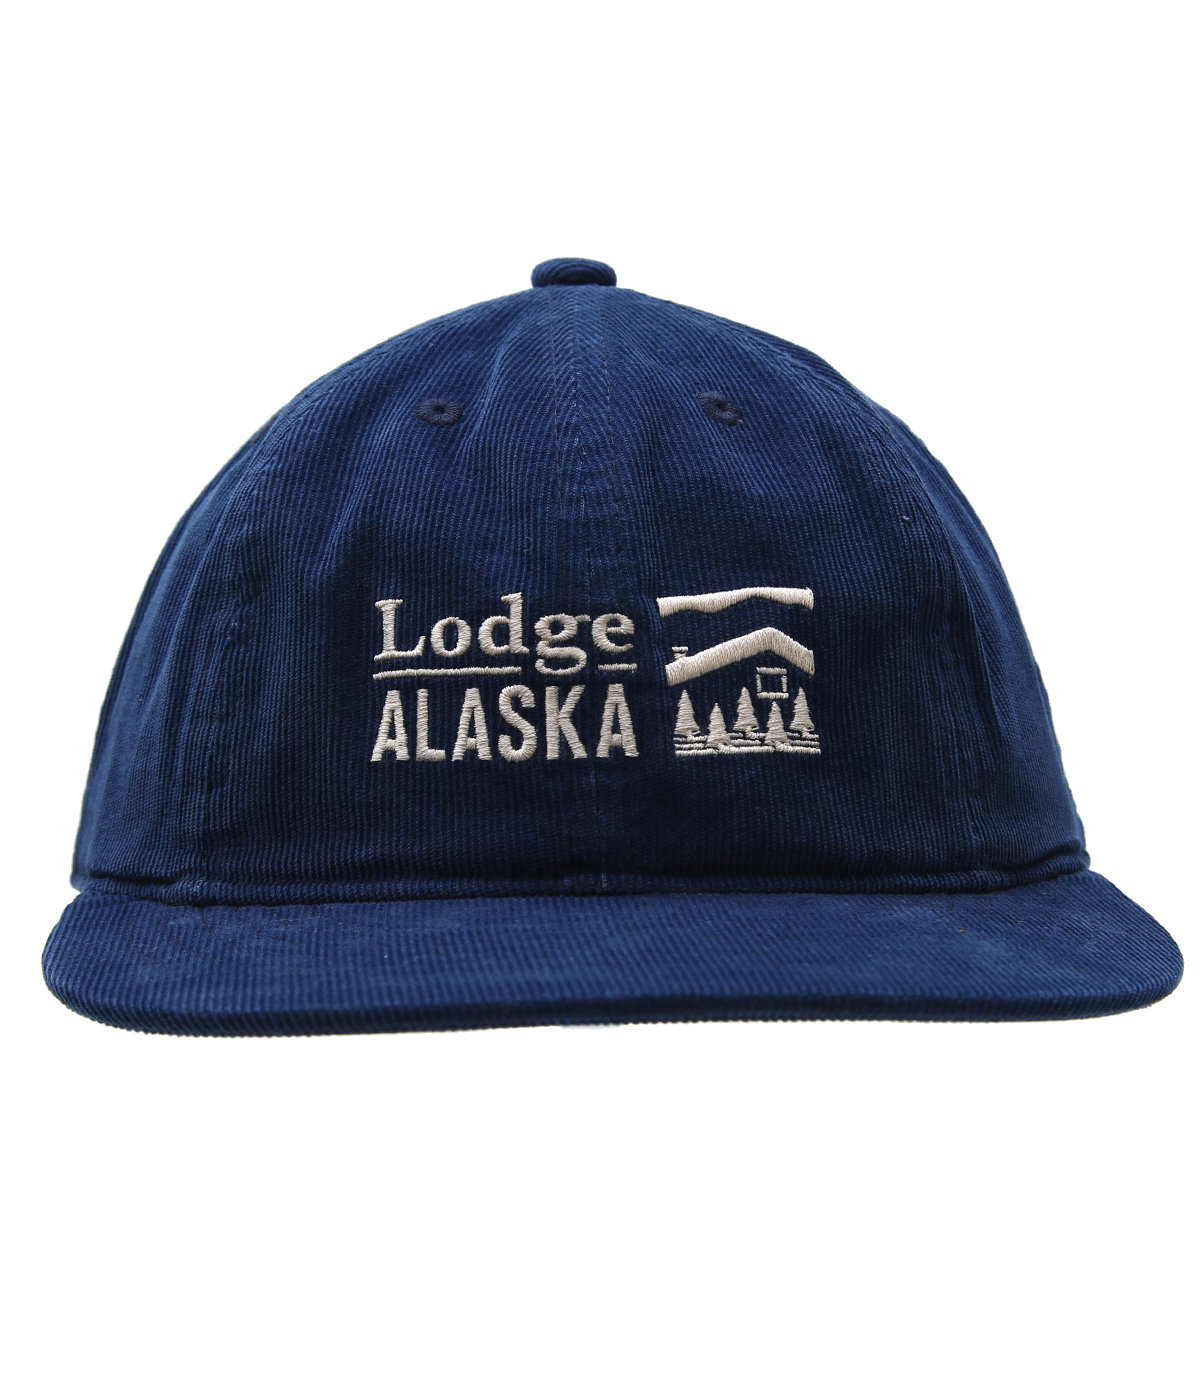 Lodge ALASKA LOGO CAP